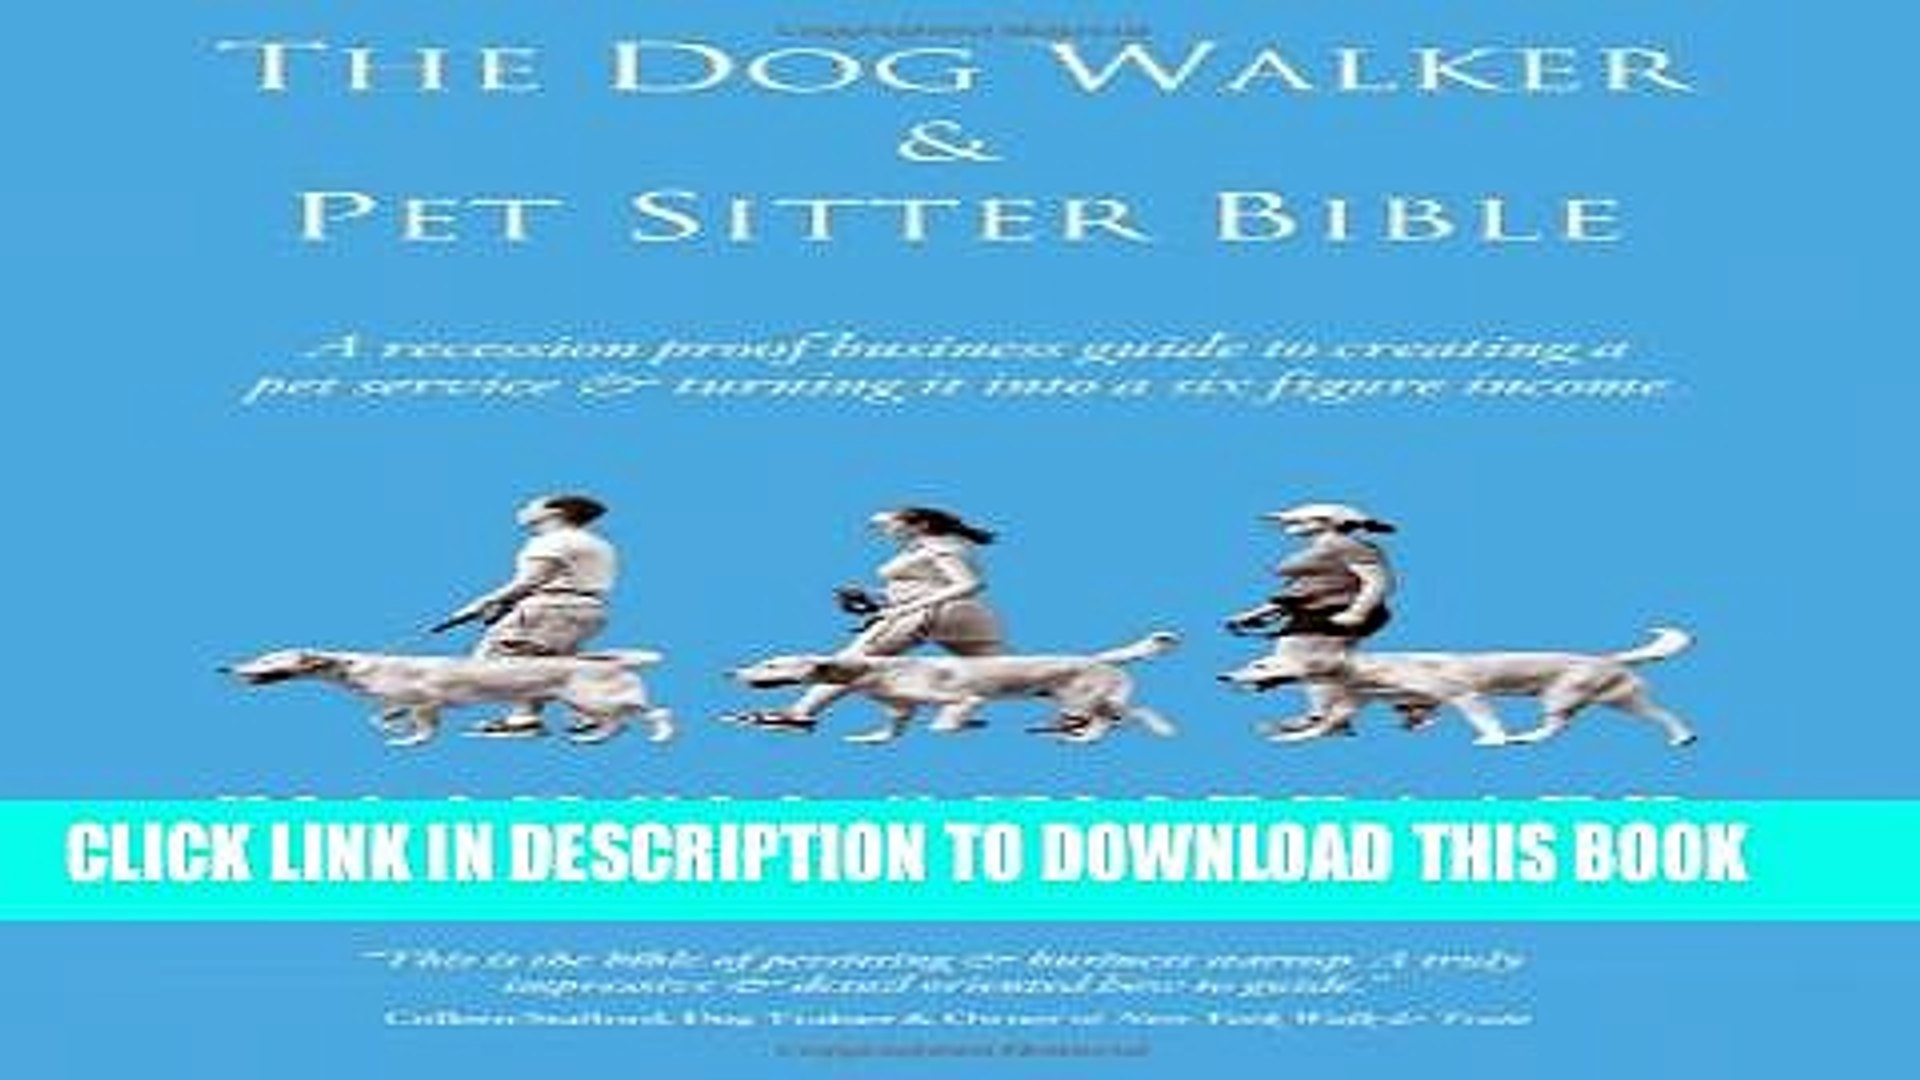 [PDF] The Dog Walker   Pet Sitter Bible: A Recession-Proof Business Guide to Creating a Pet